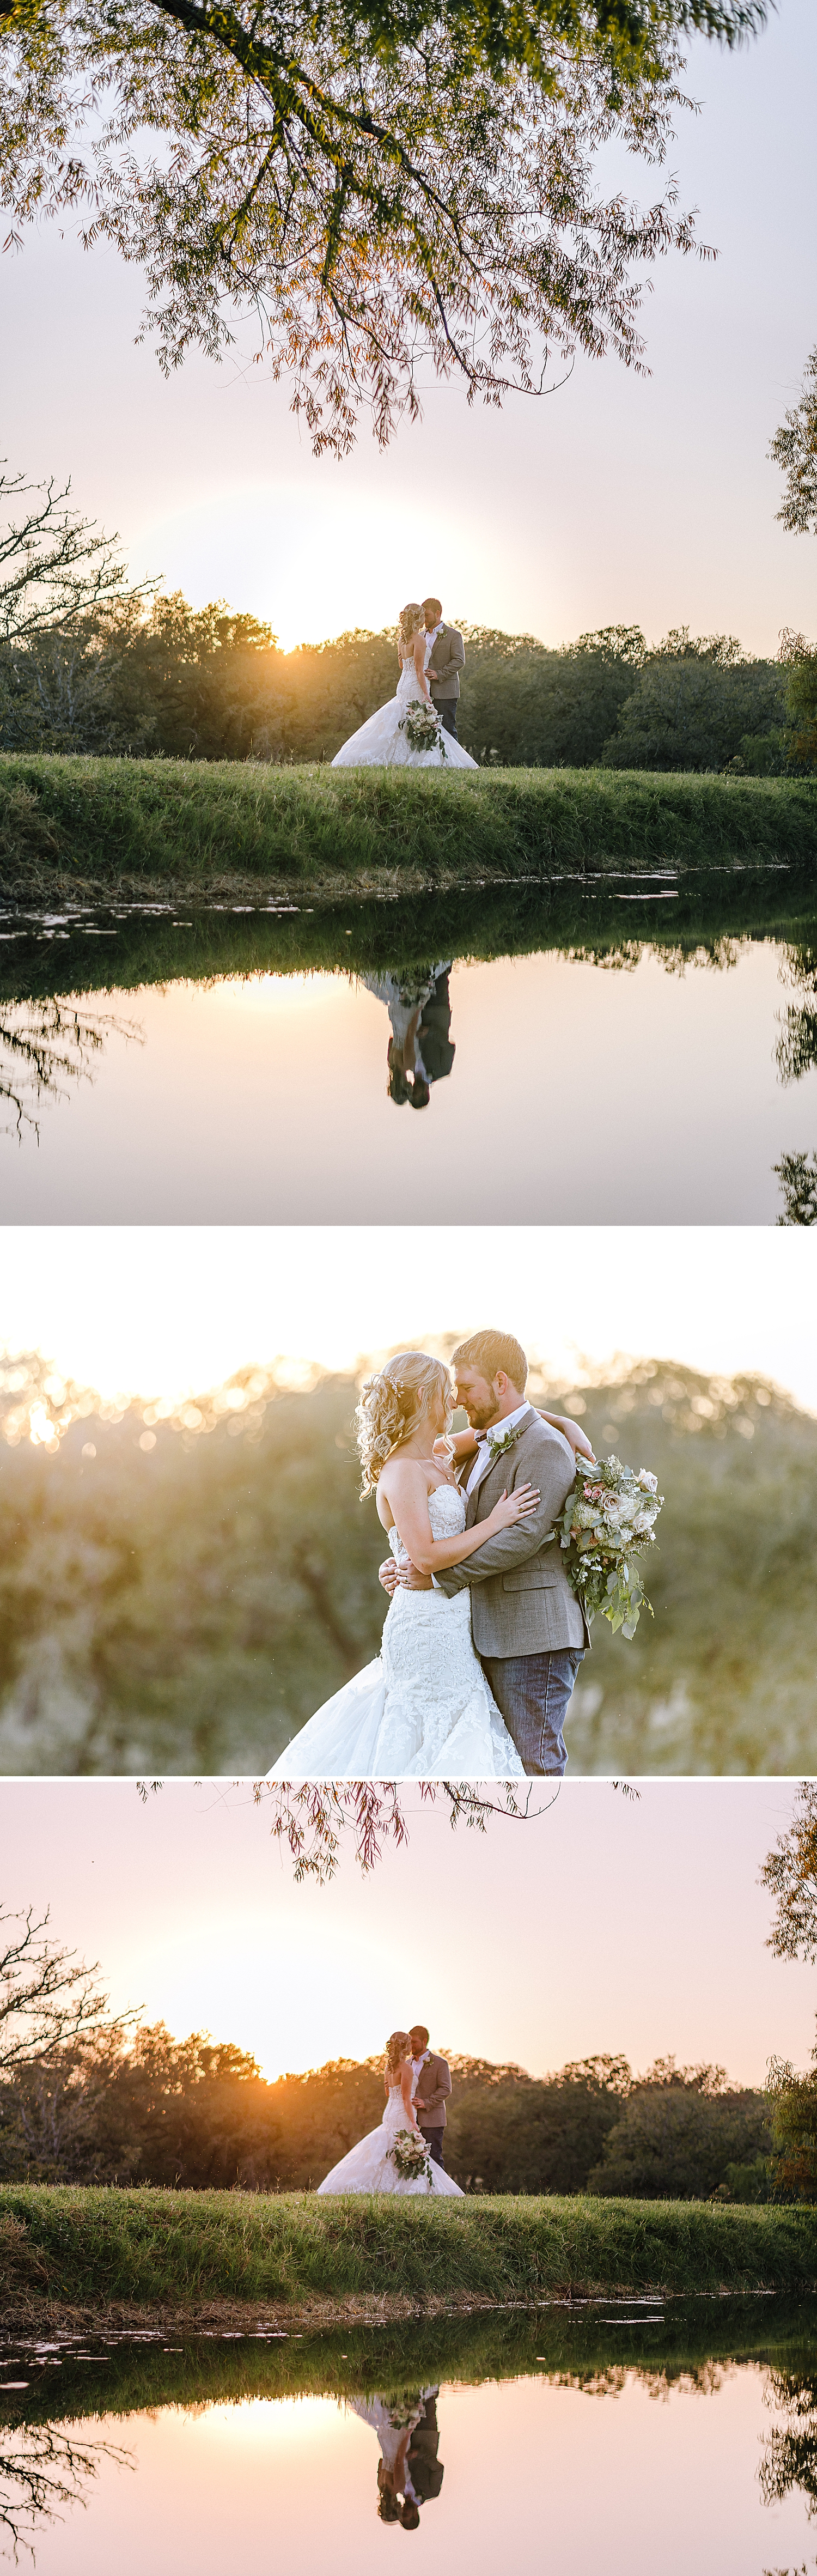 Rackler-Ranch-LaVernia-Texas-Wedding-Carly-Barton-Photography_0097.jpg